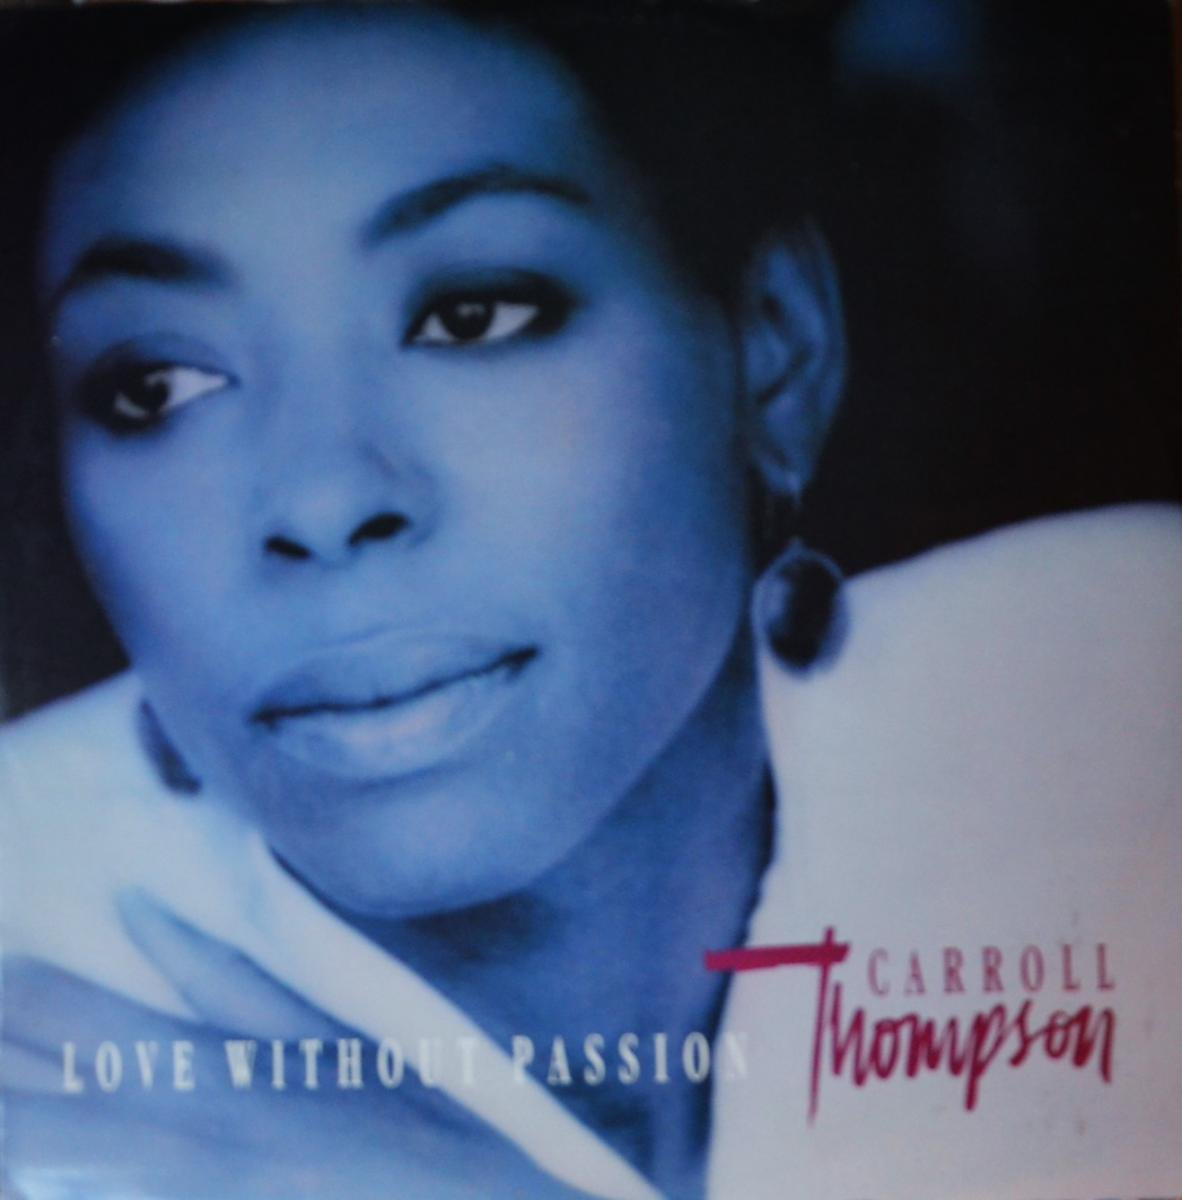 CARROLL THOMPSON / LOVE WITHOUT PASSION / TONIGHT (12